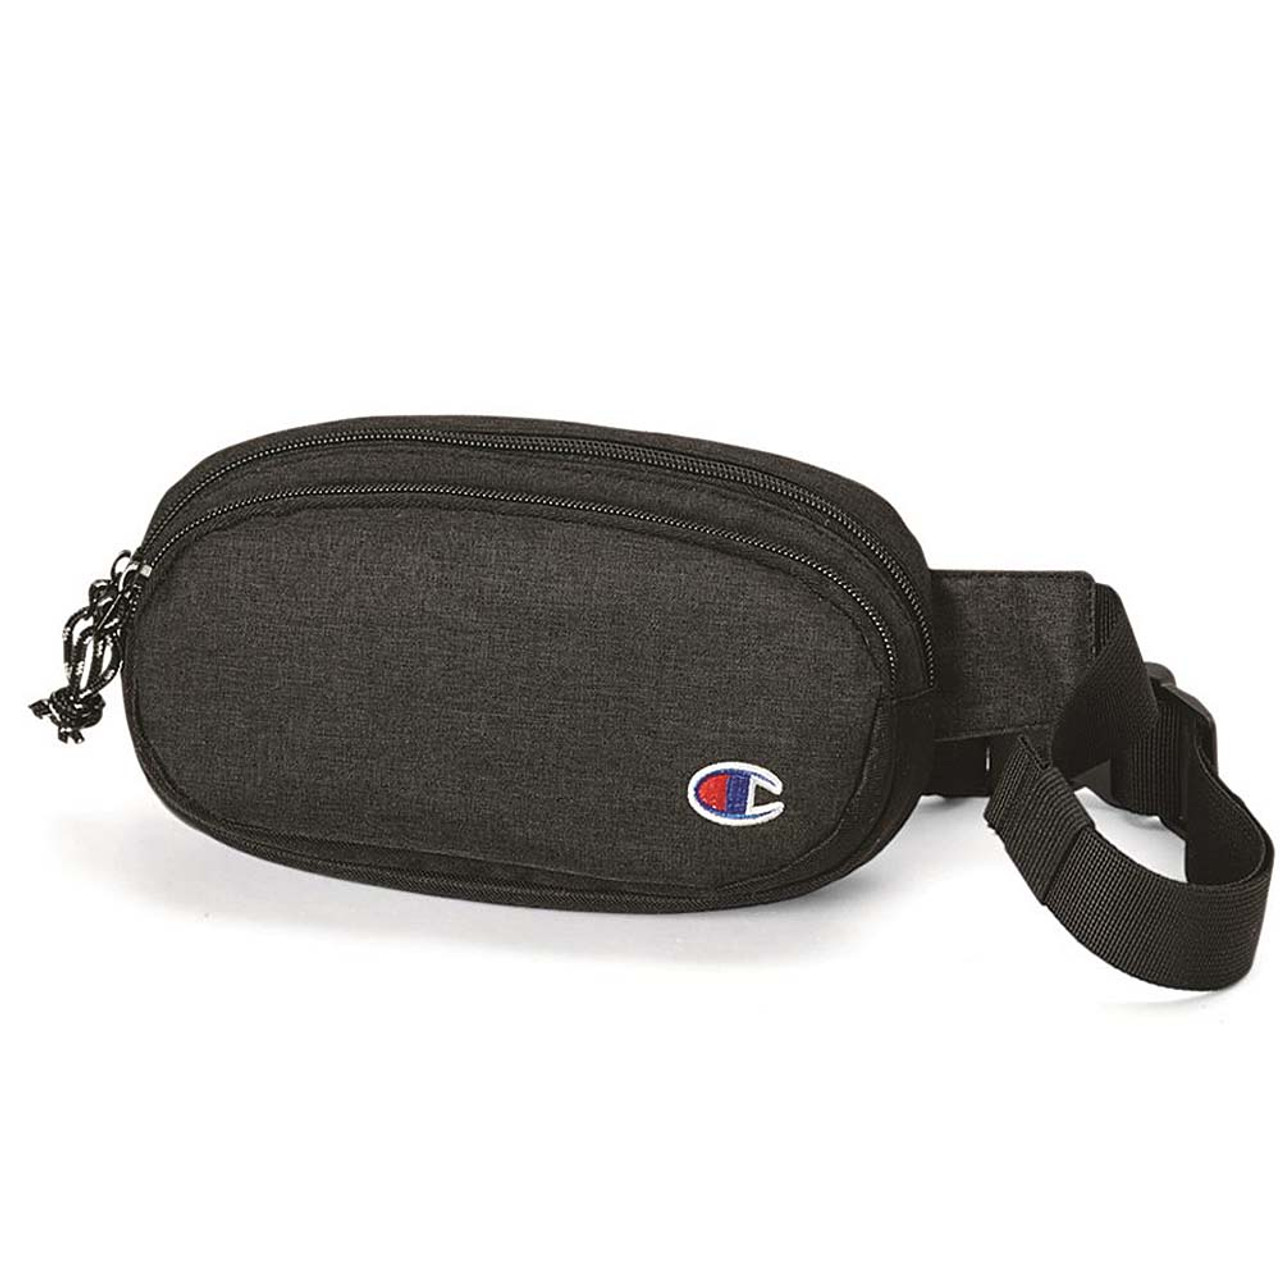 CS3004 Champion Fanny Pack | T-shirt.ca